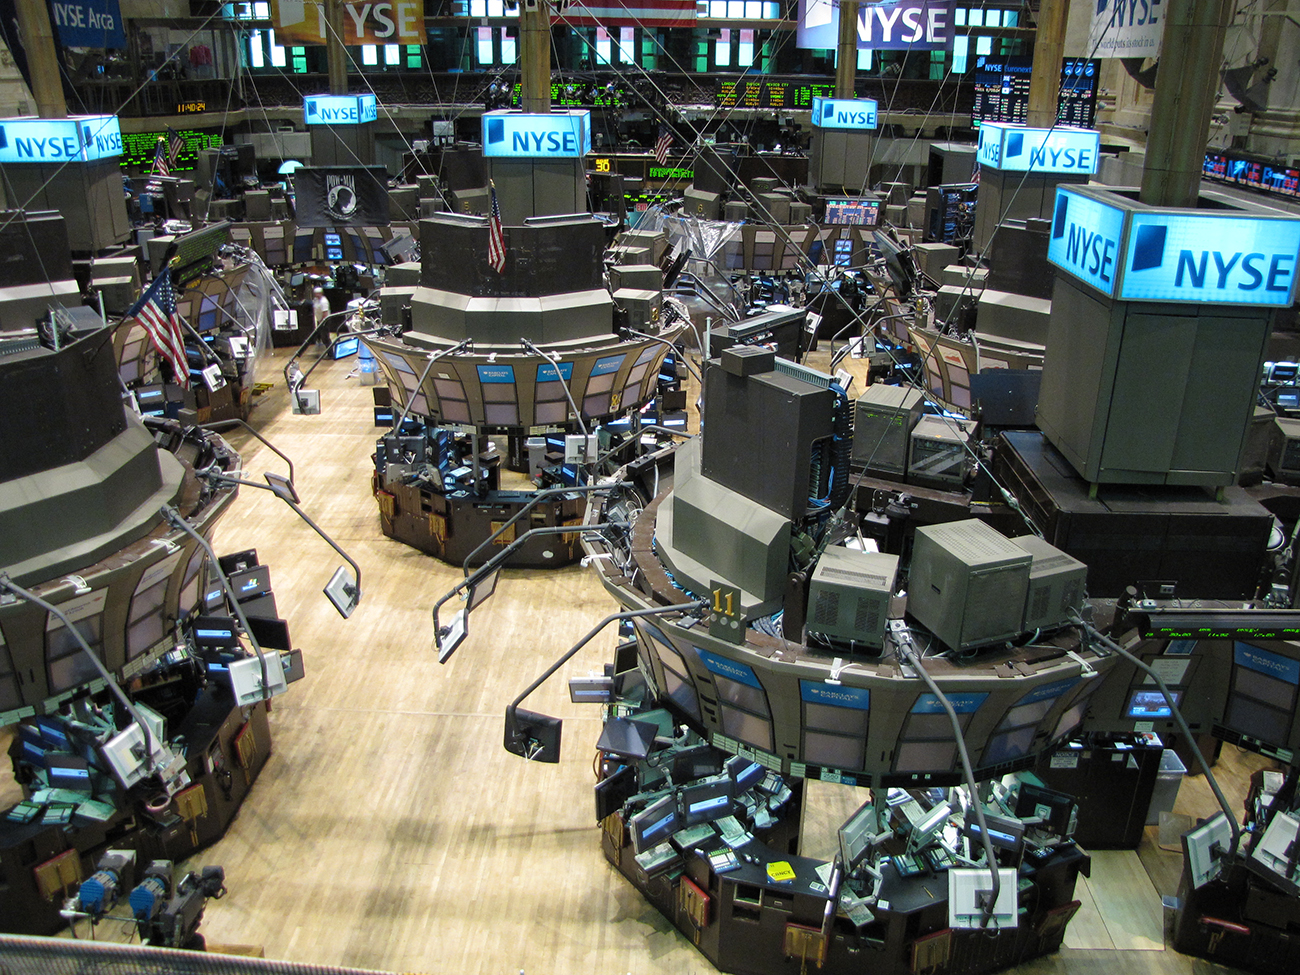 A photograph shows the New York Stock Exchange. The indoor area has many terminals, each one is covered with computers and display screens. In the background there are screens that show stocks and prices.